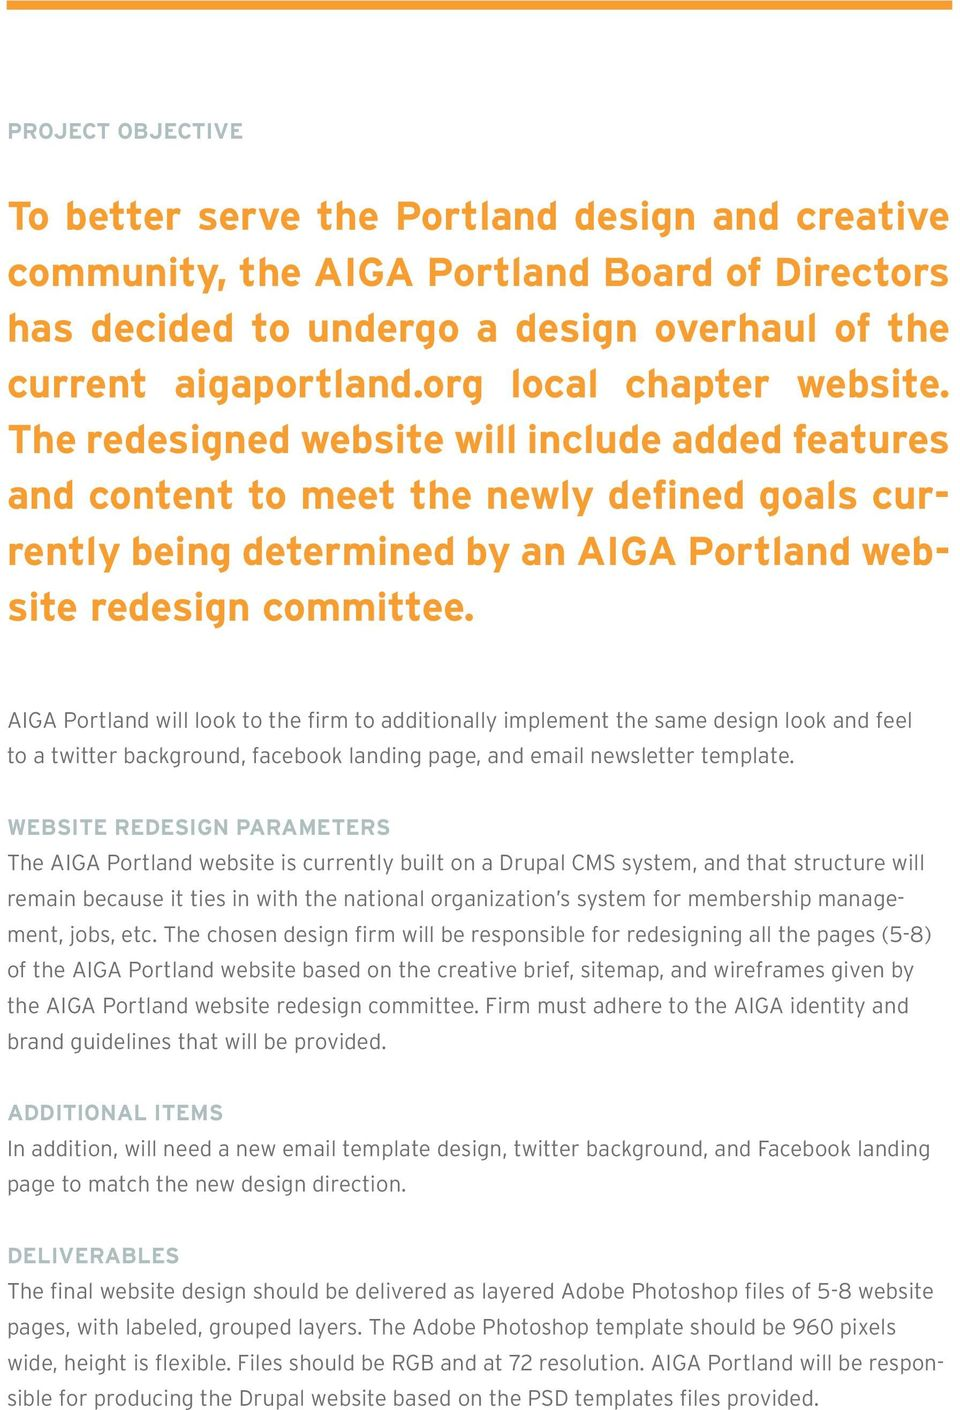 Aiga Portland Is Looking For An Interactive Design Partner To